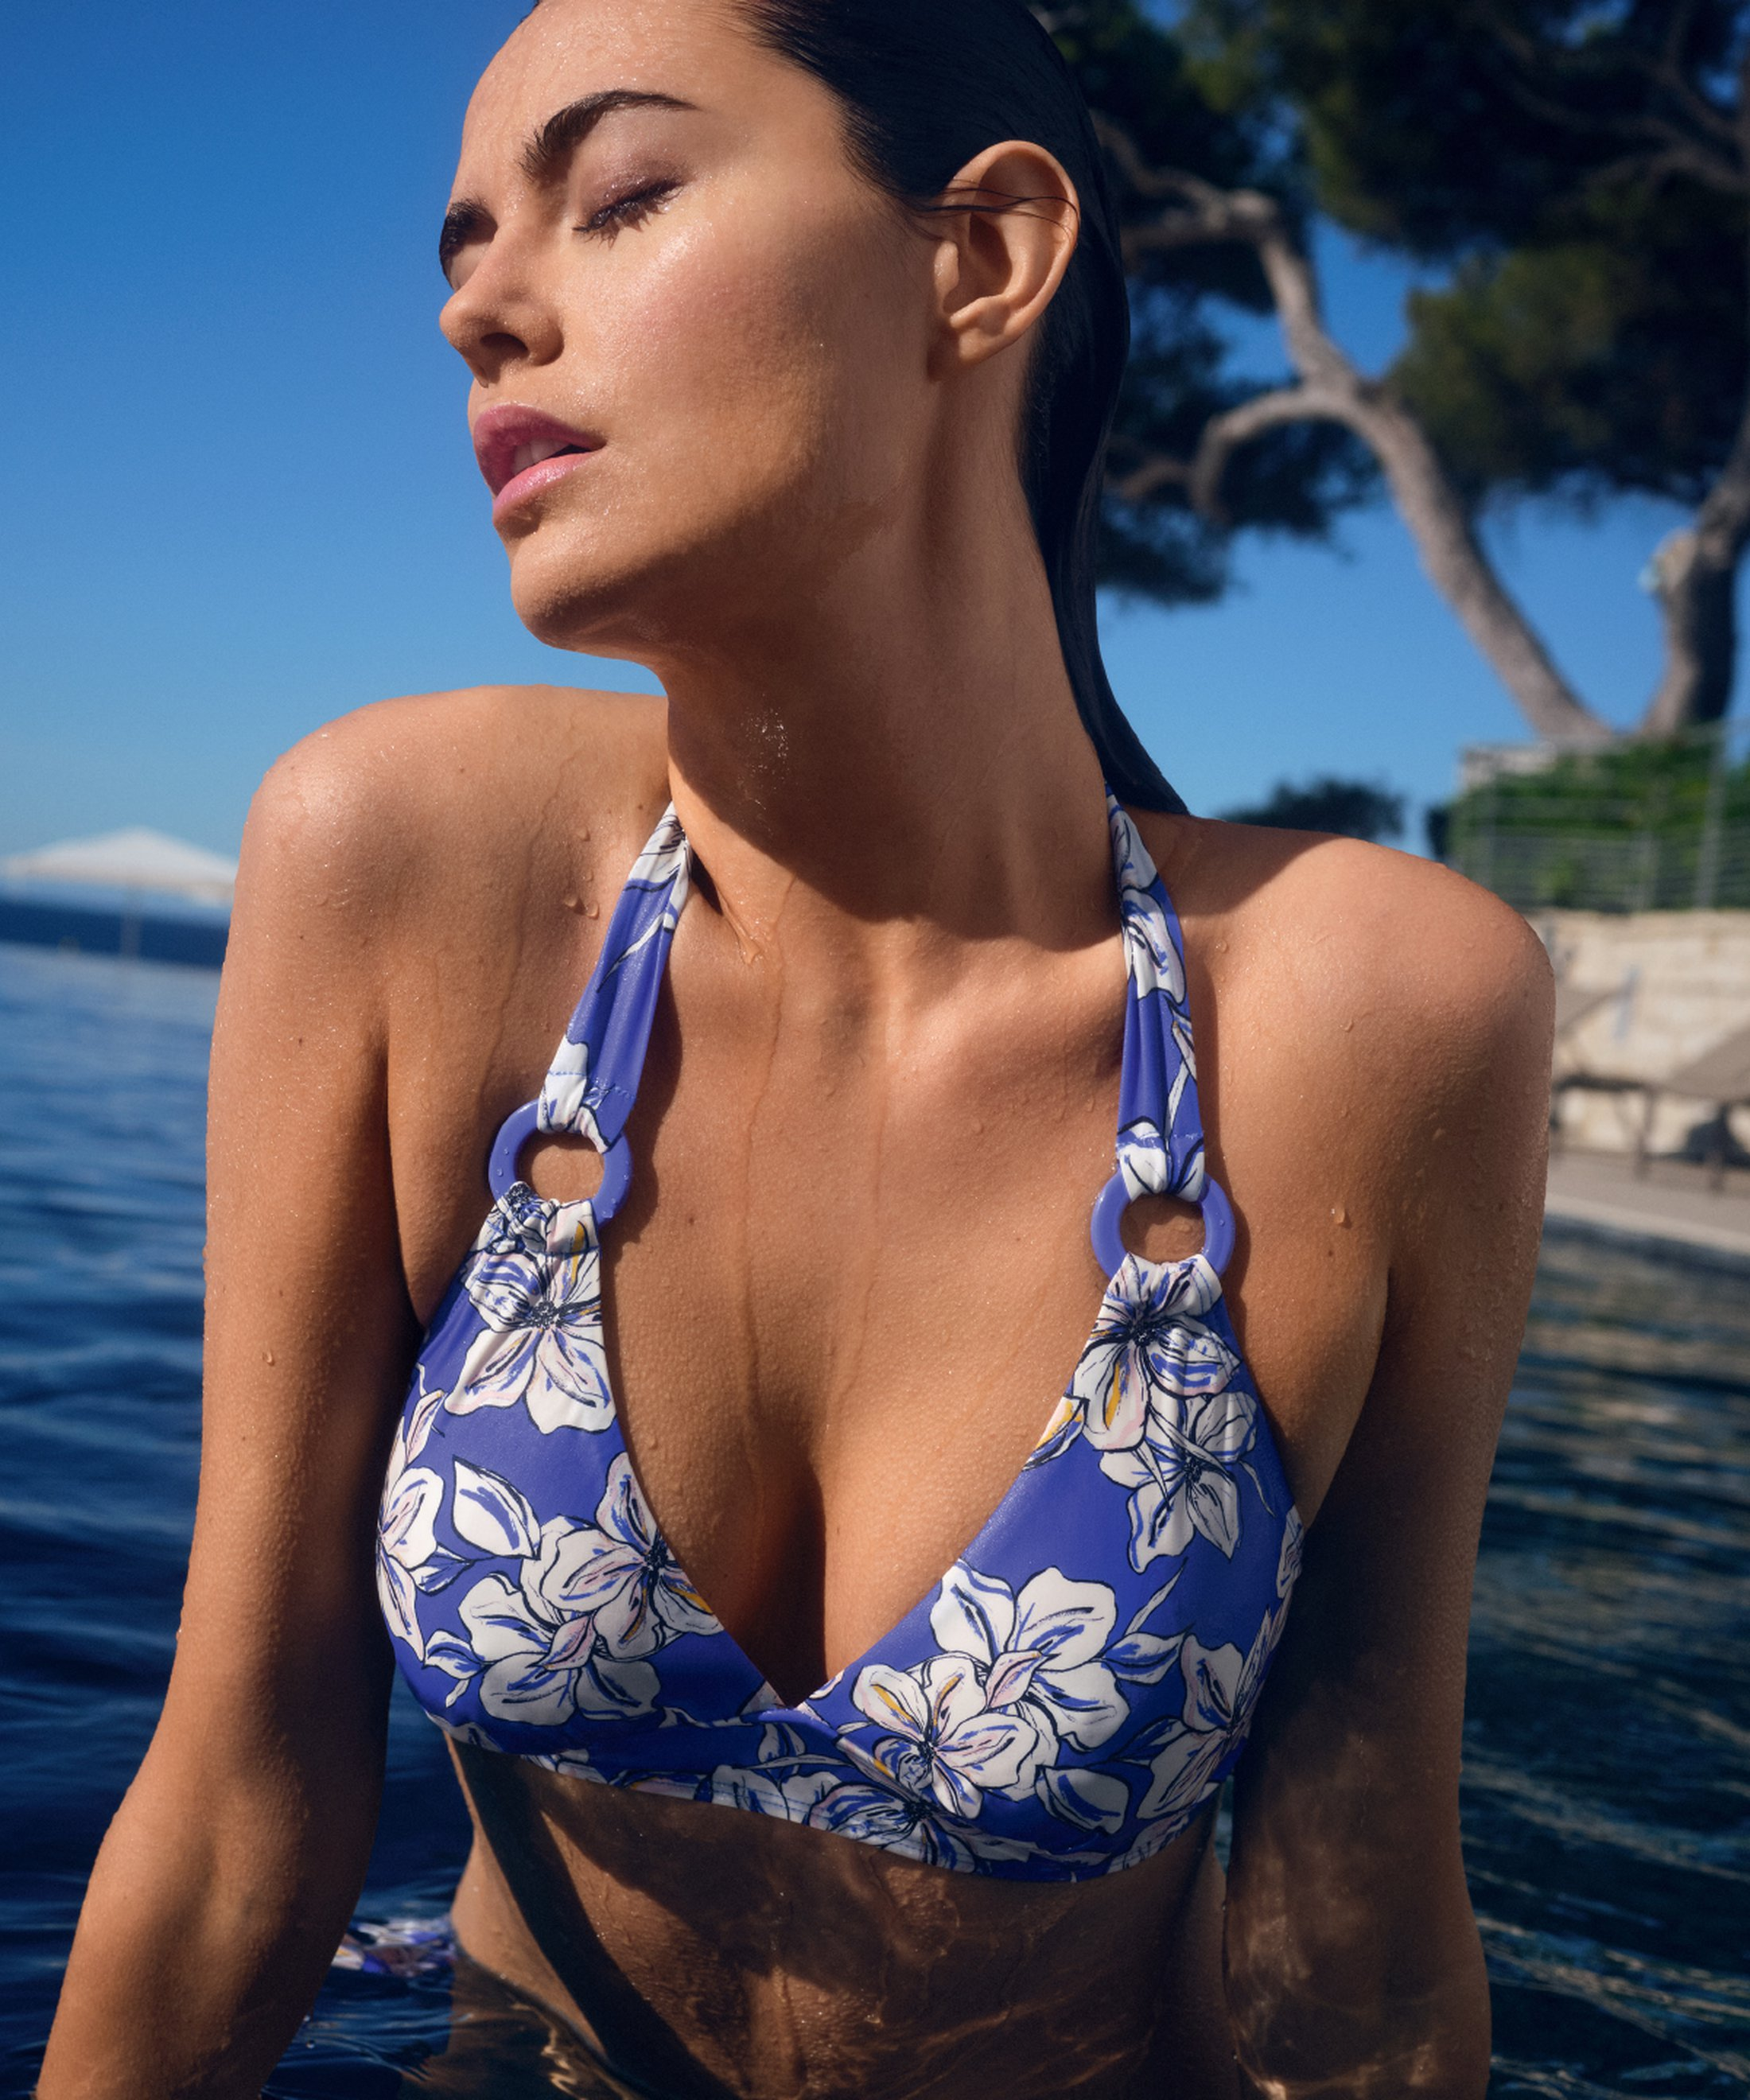 PARFUMS D'ÉTÉ Triangle bikini top Floral Glycine Blue | Aubade